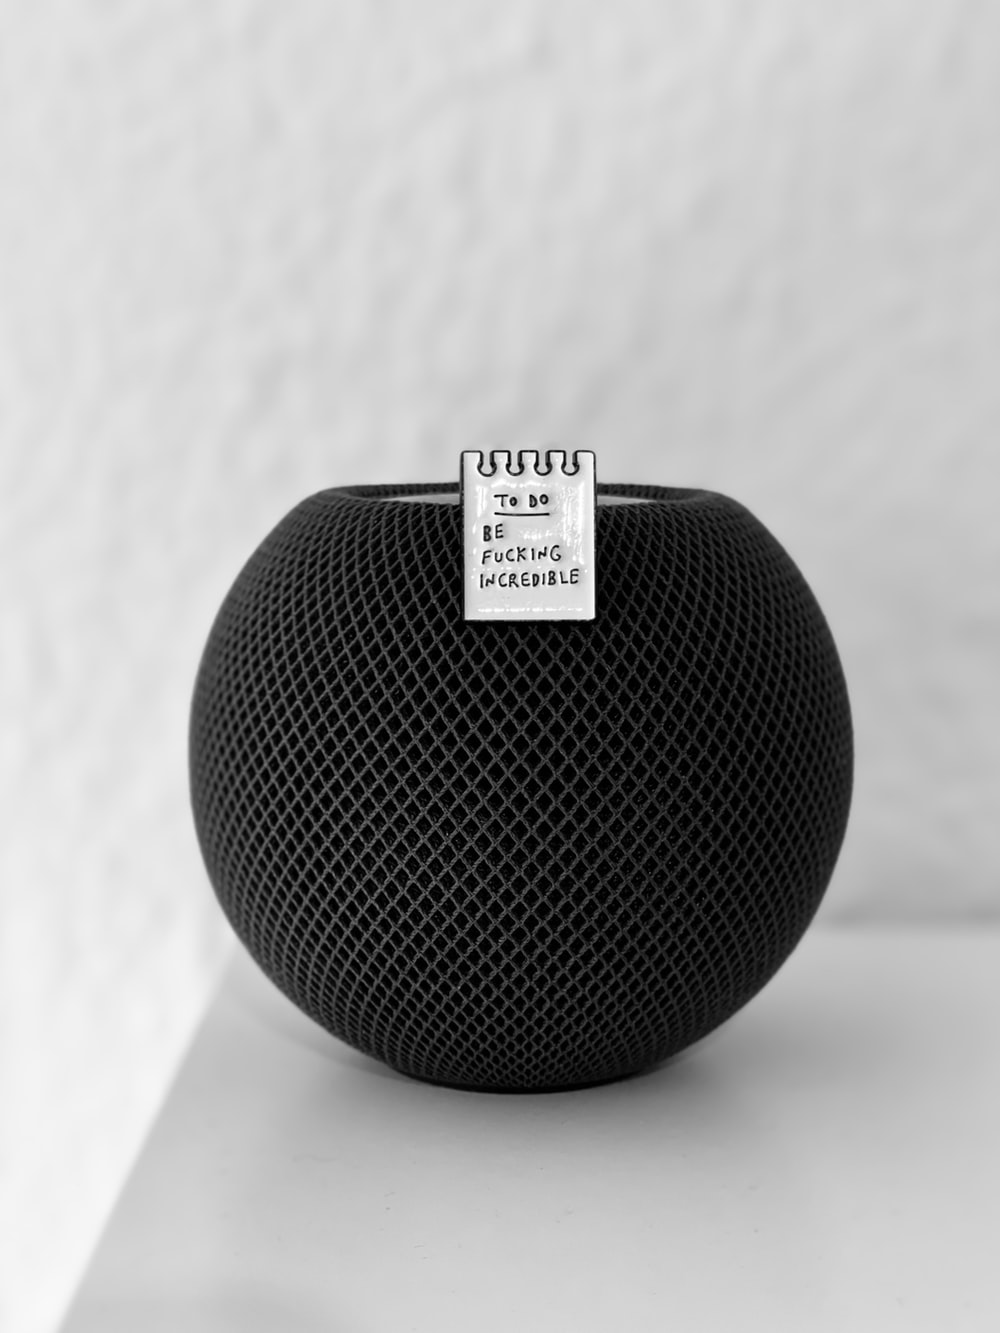 black round portable speaker on white table